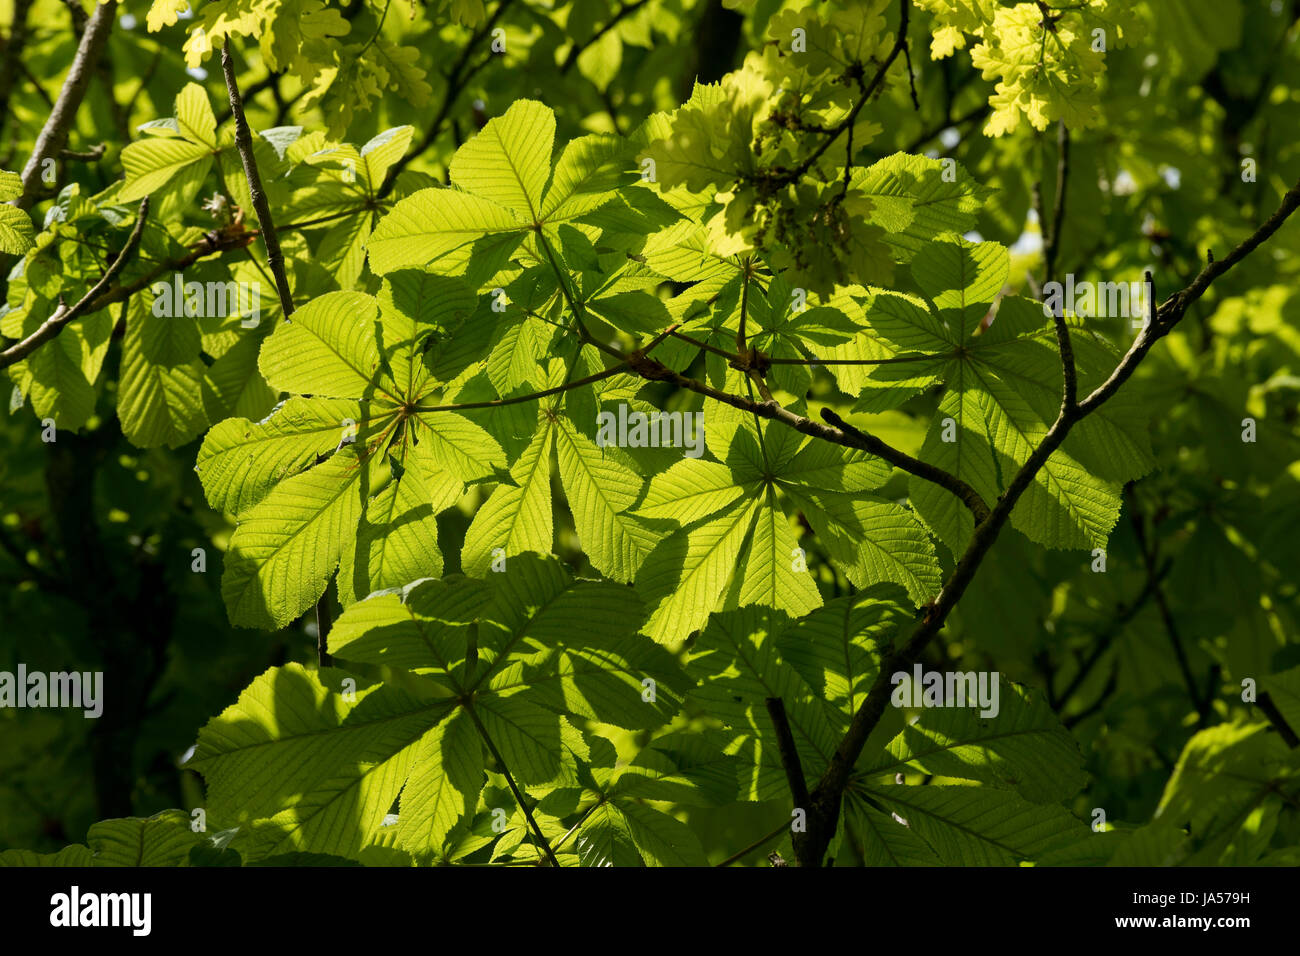 Spring sunlight shining through the young leaves of a horse chestnut or conker, Aesculus hippocastaneum, tree, Berkshire, - Stock Image